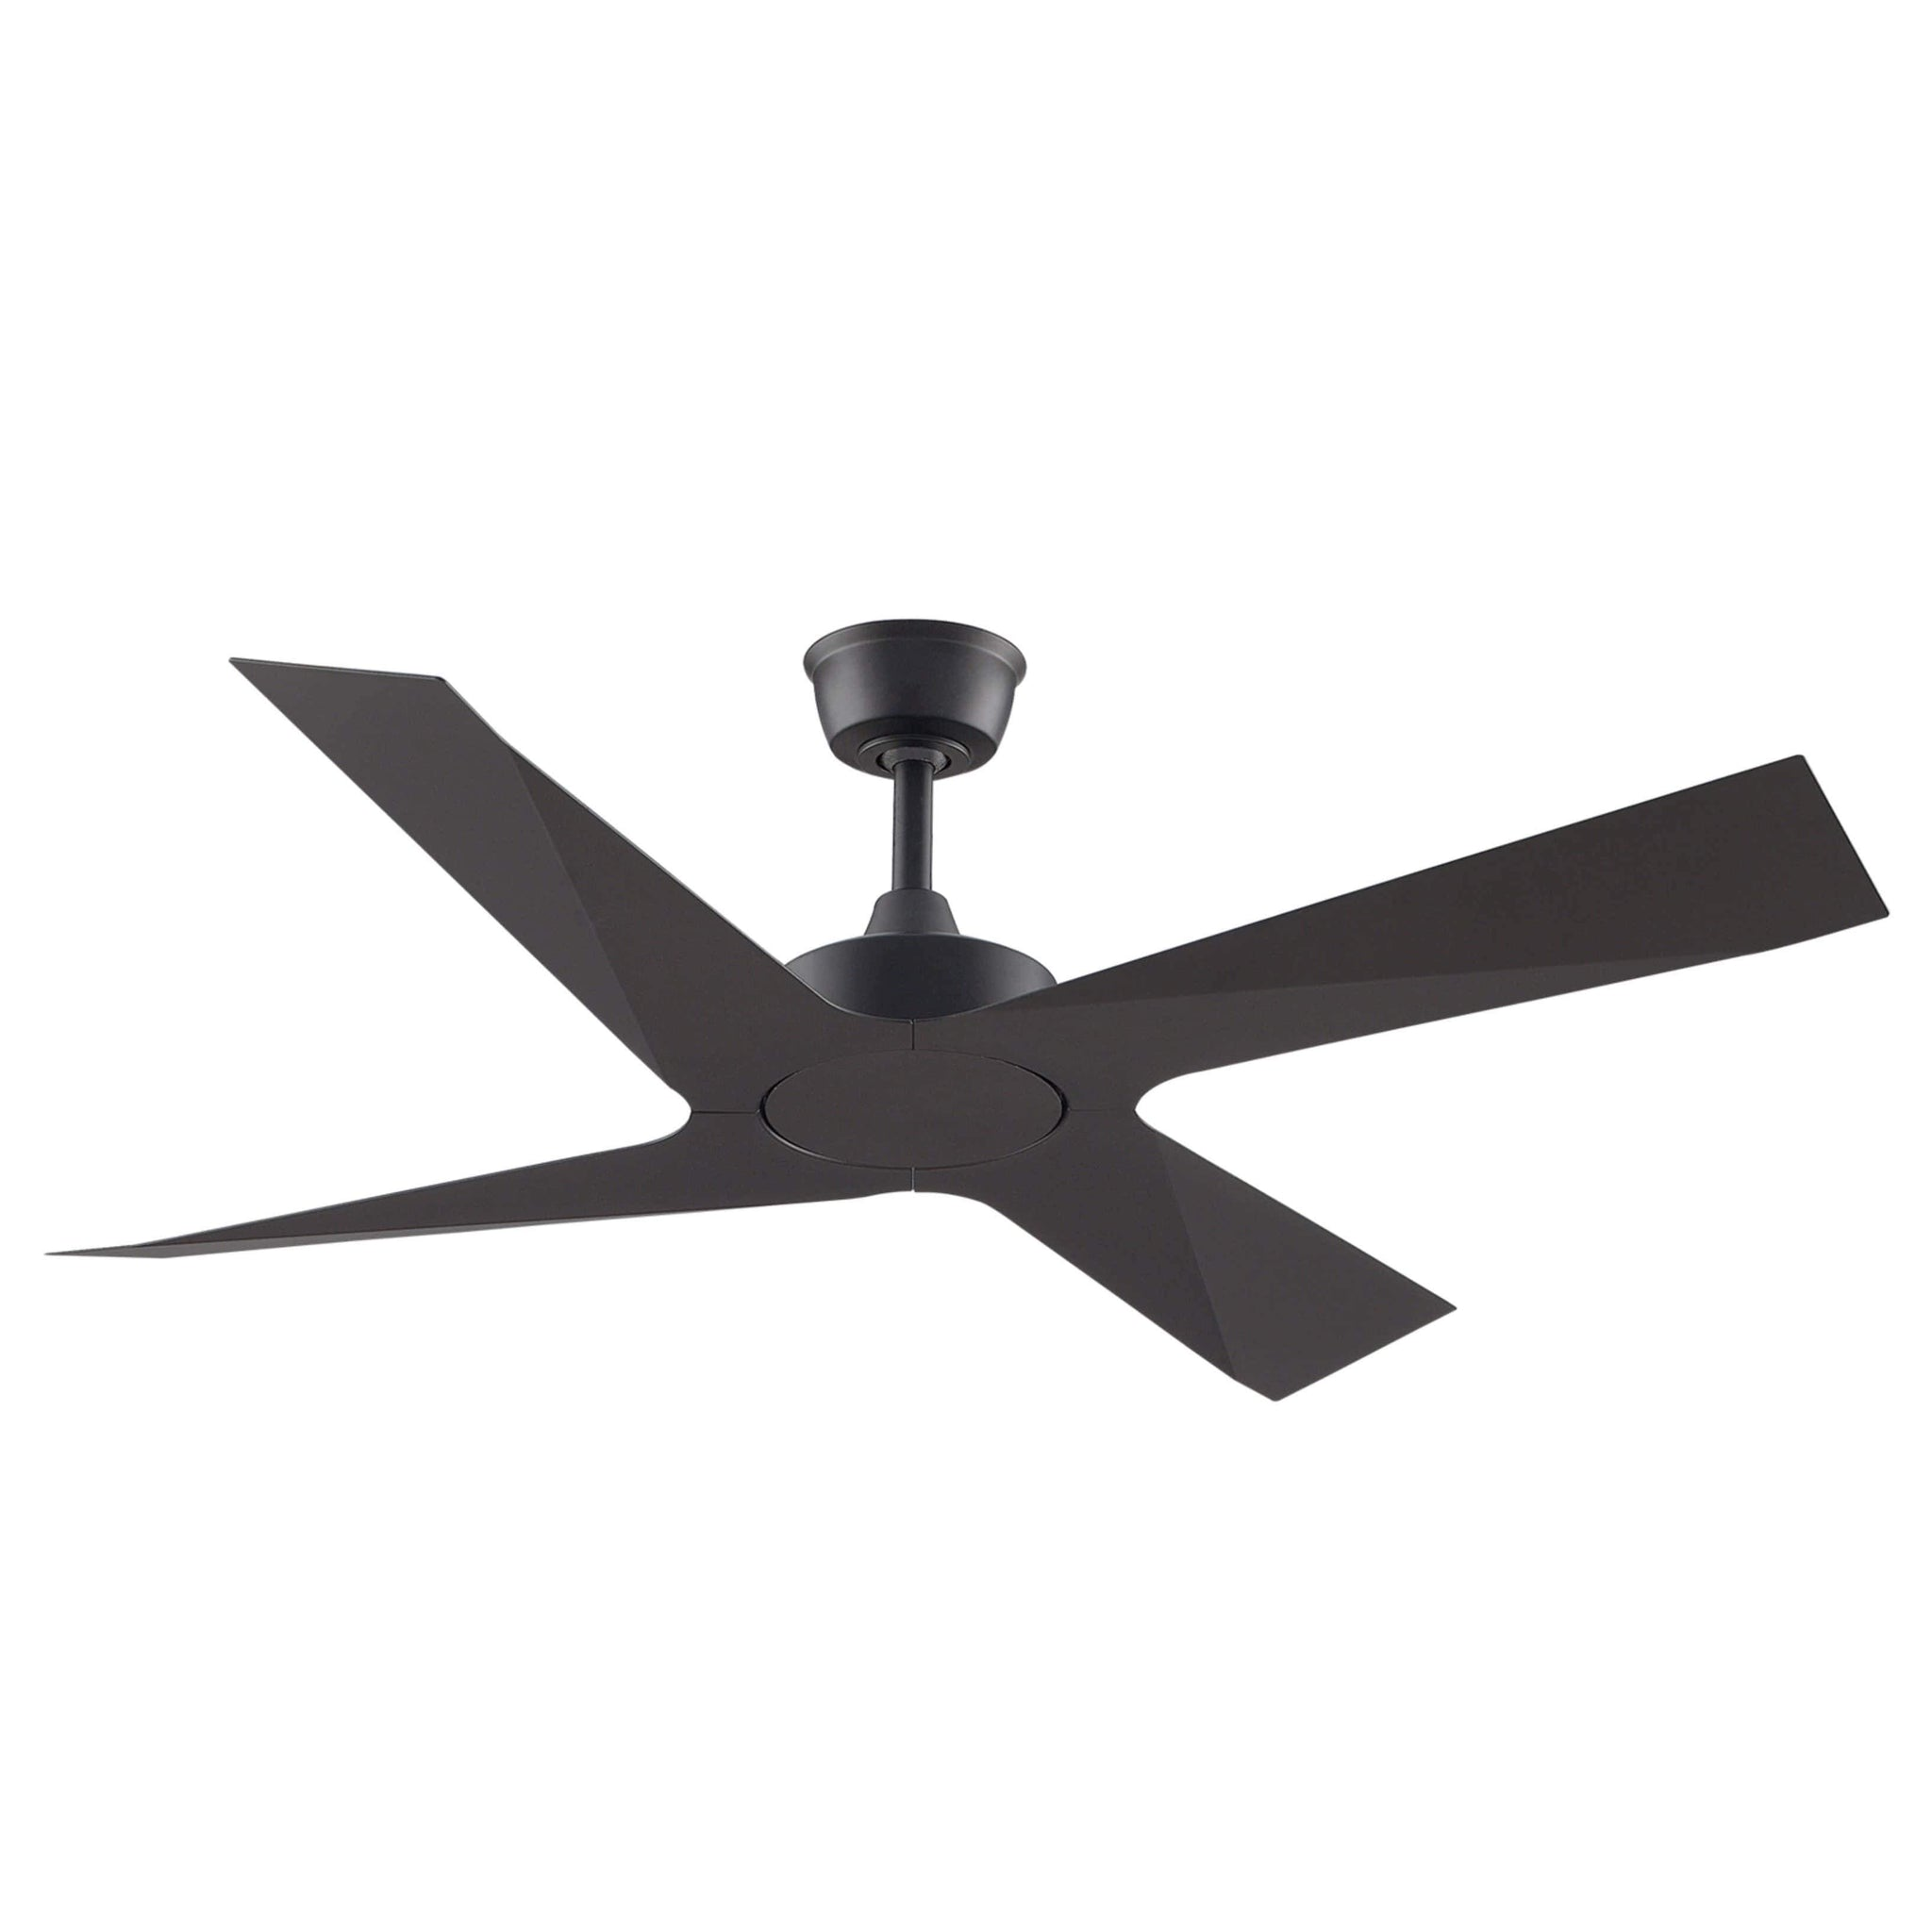 Outdoor Fans Modn-4 Ceiling Fan - Black